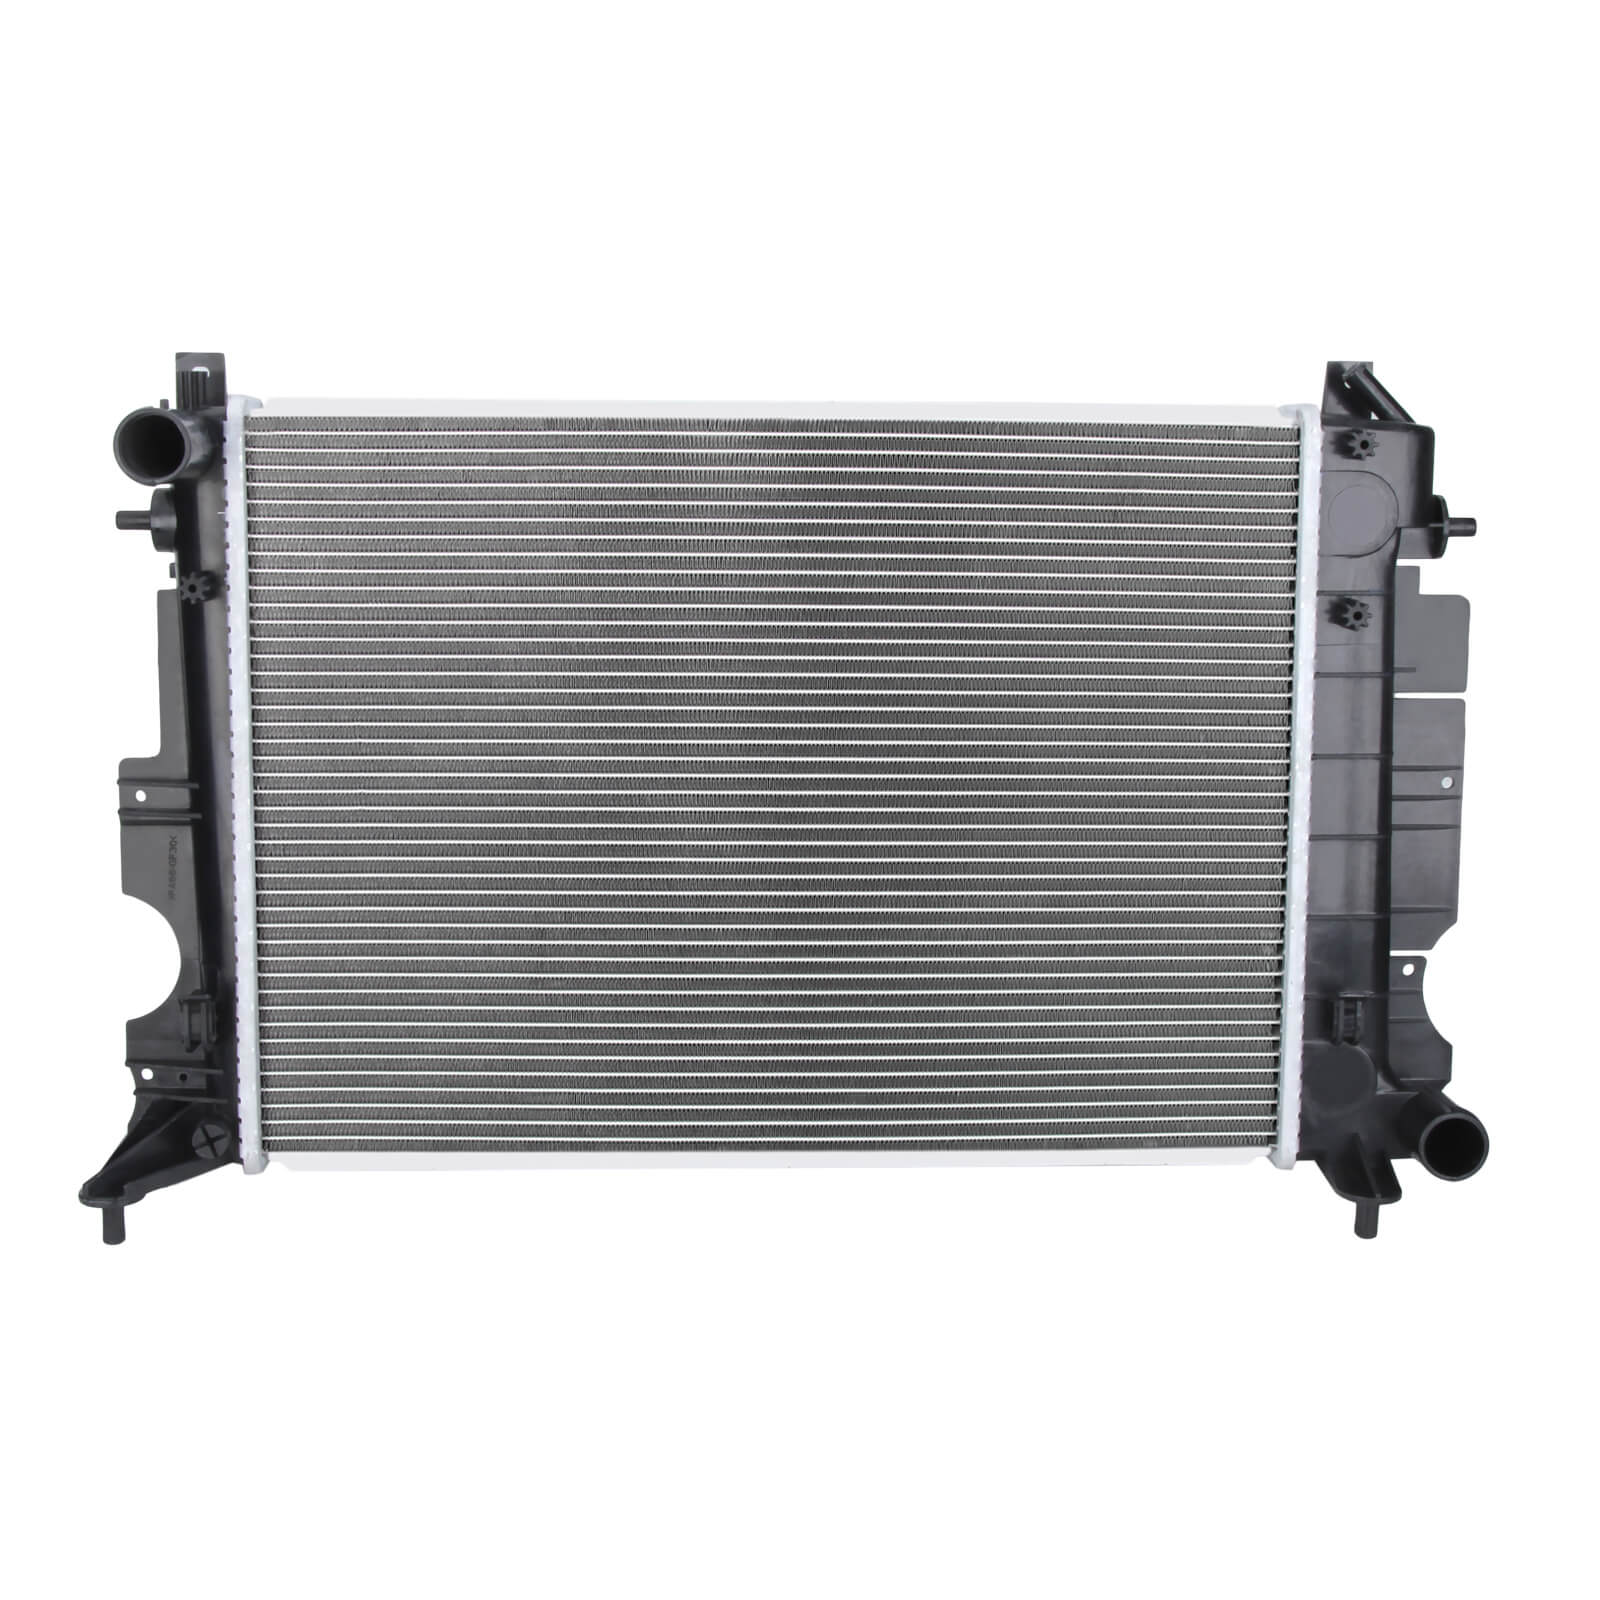 ENGINE COOLING RADIATOR FOR SAAB 9-3 YS3D HATCHBACK MANUAL